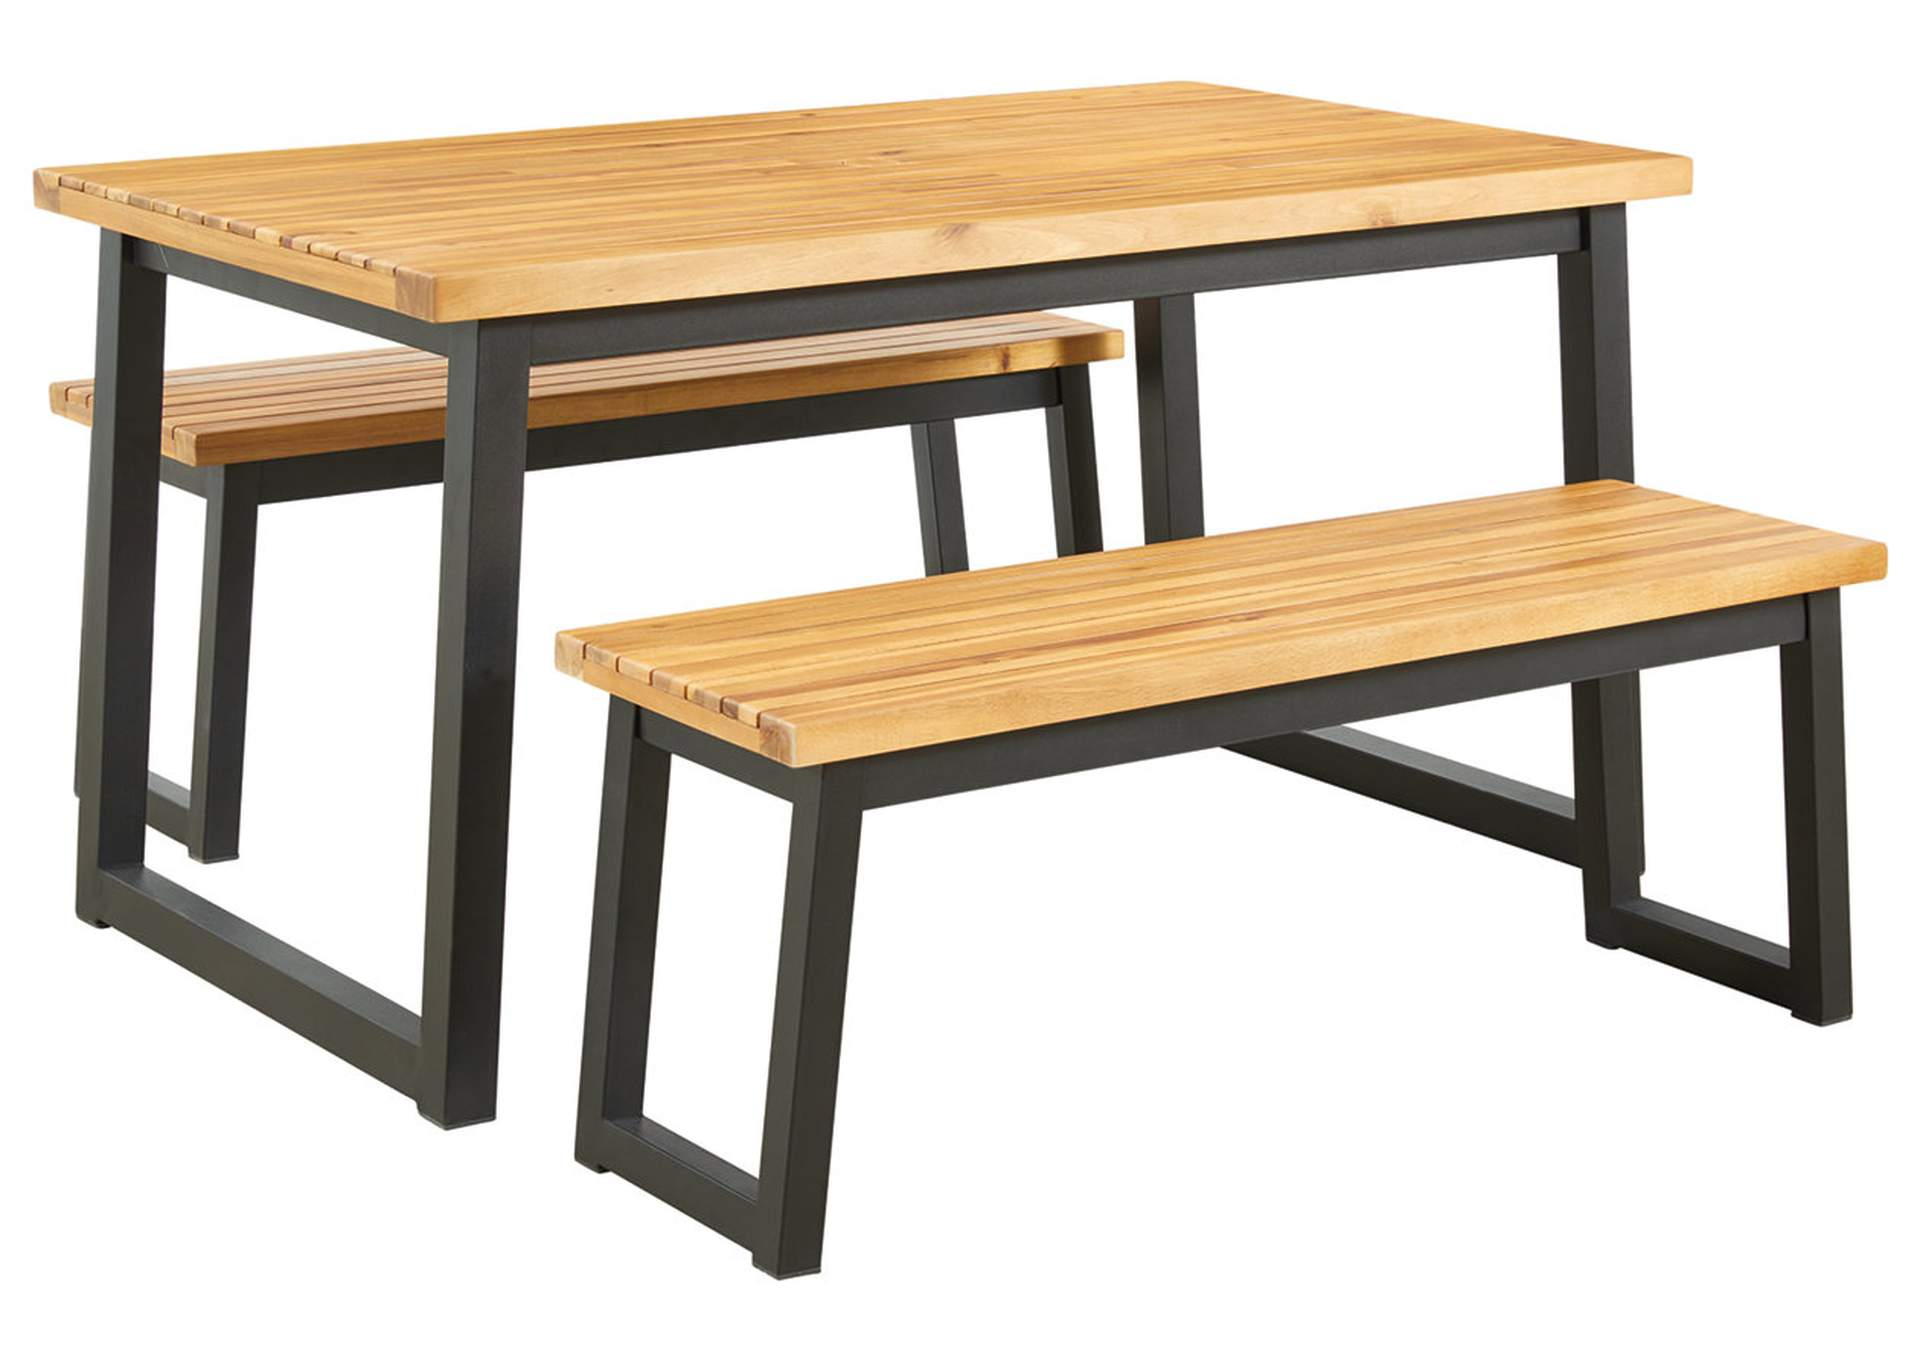 town wood outdoor dining table set set